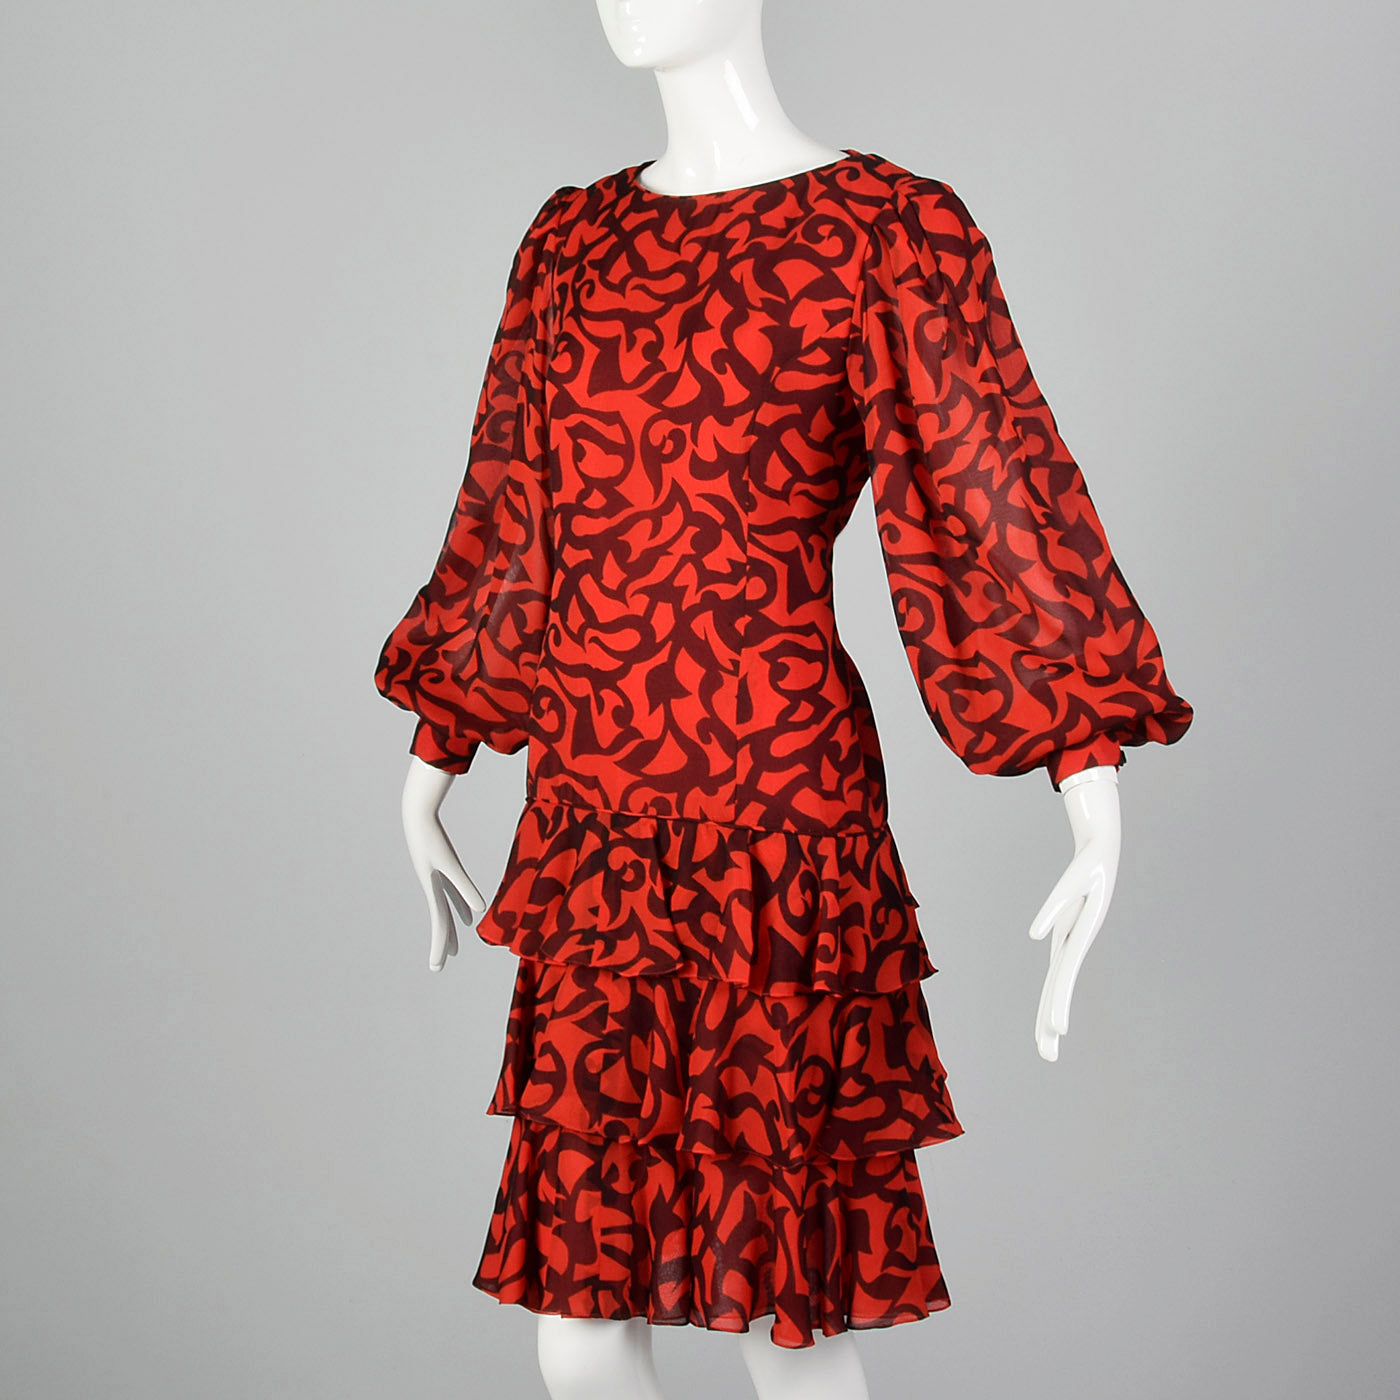 1980s Michael Novarese Red and Black Dress